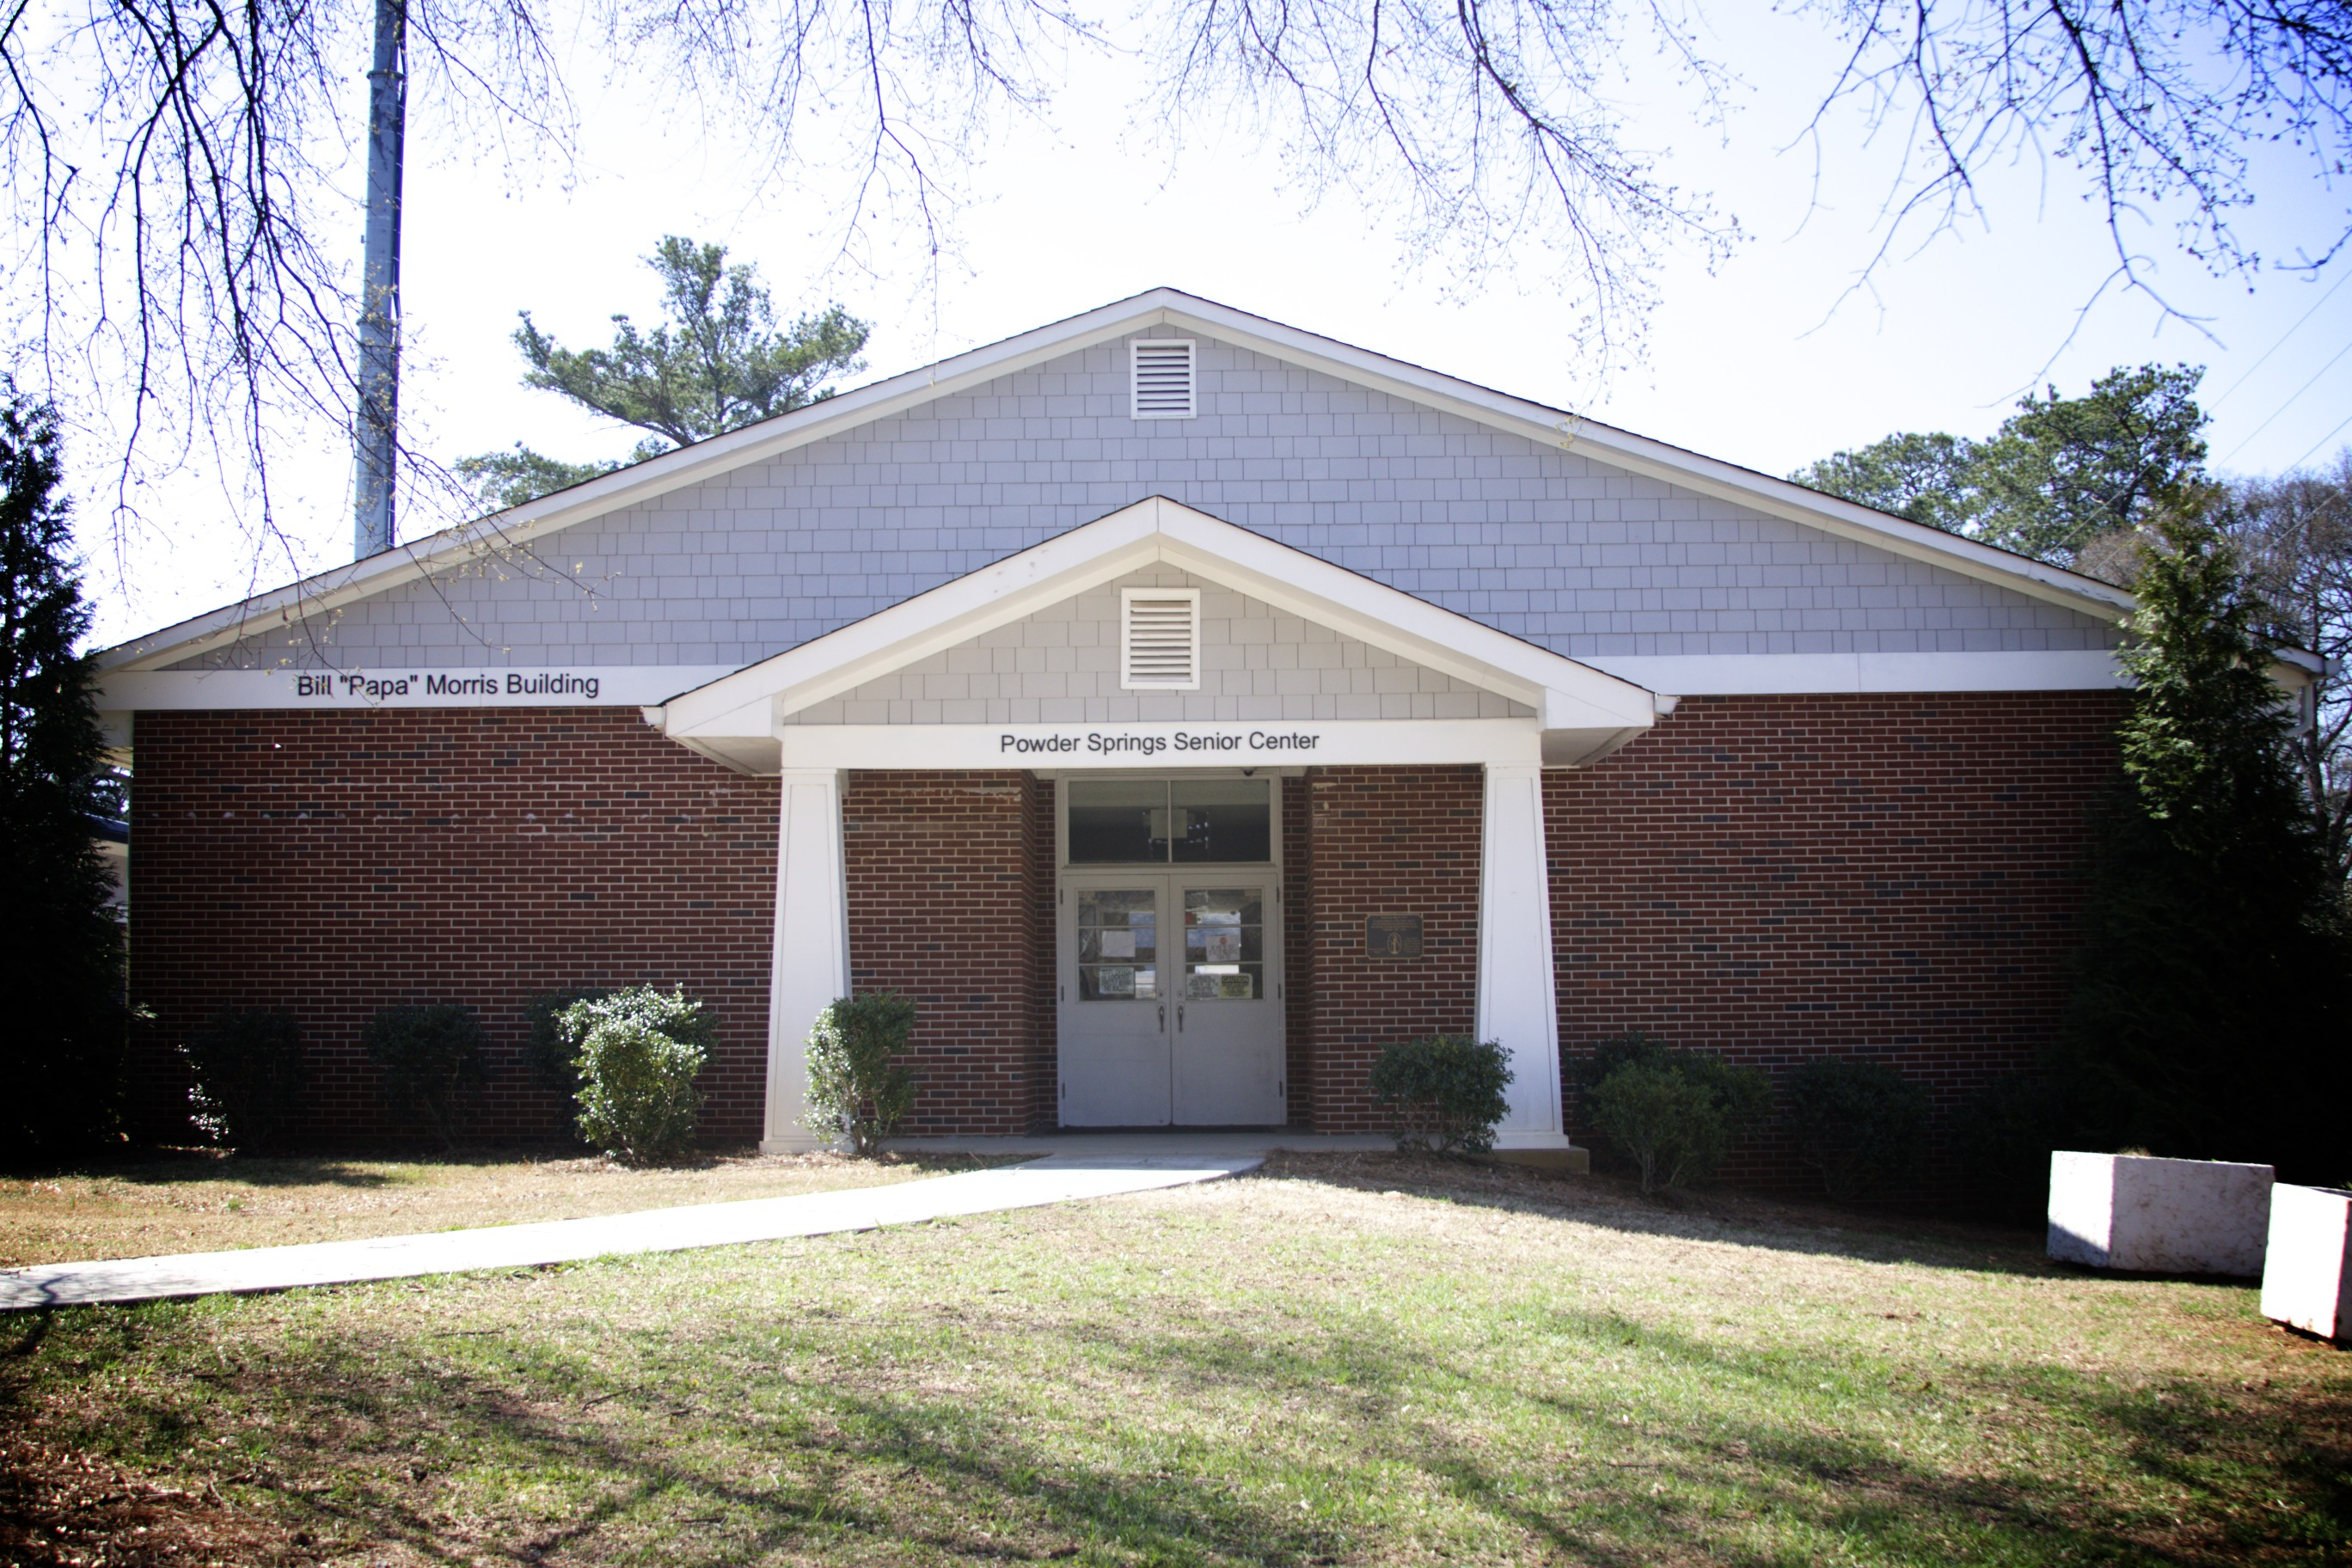 Powder Springs Senior Center